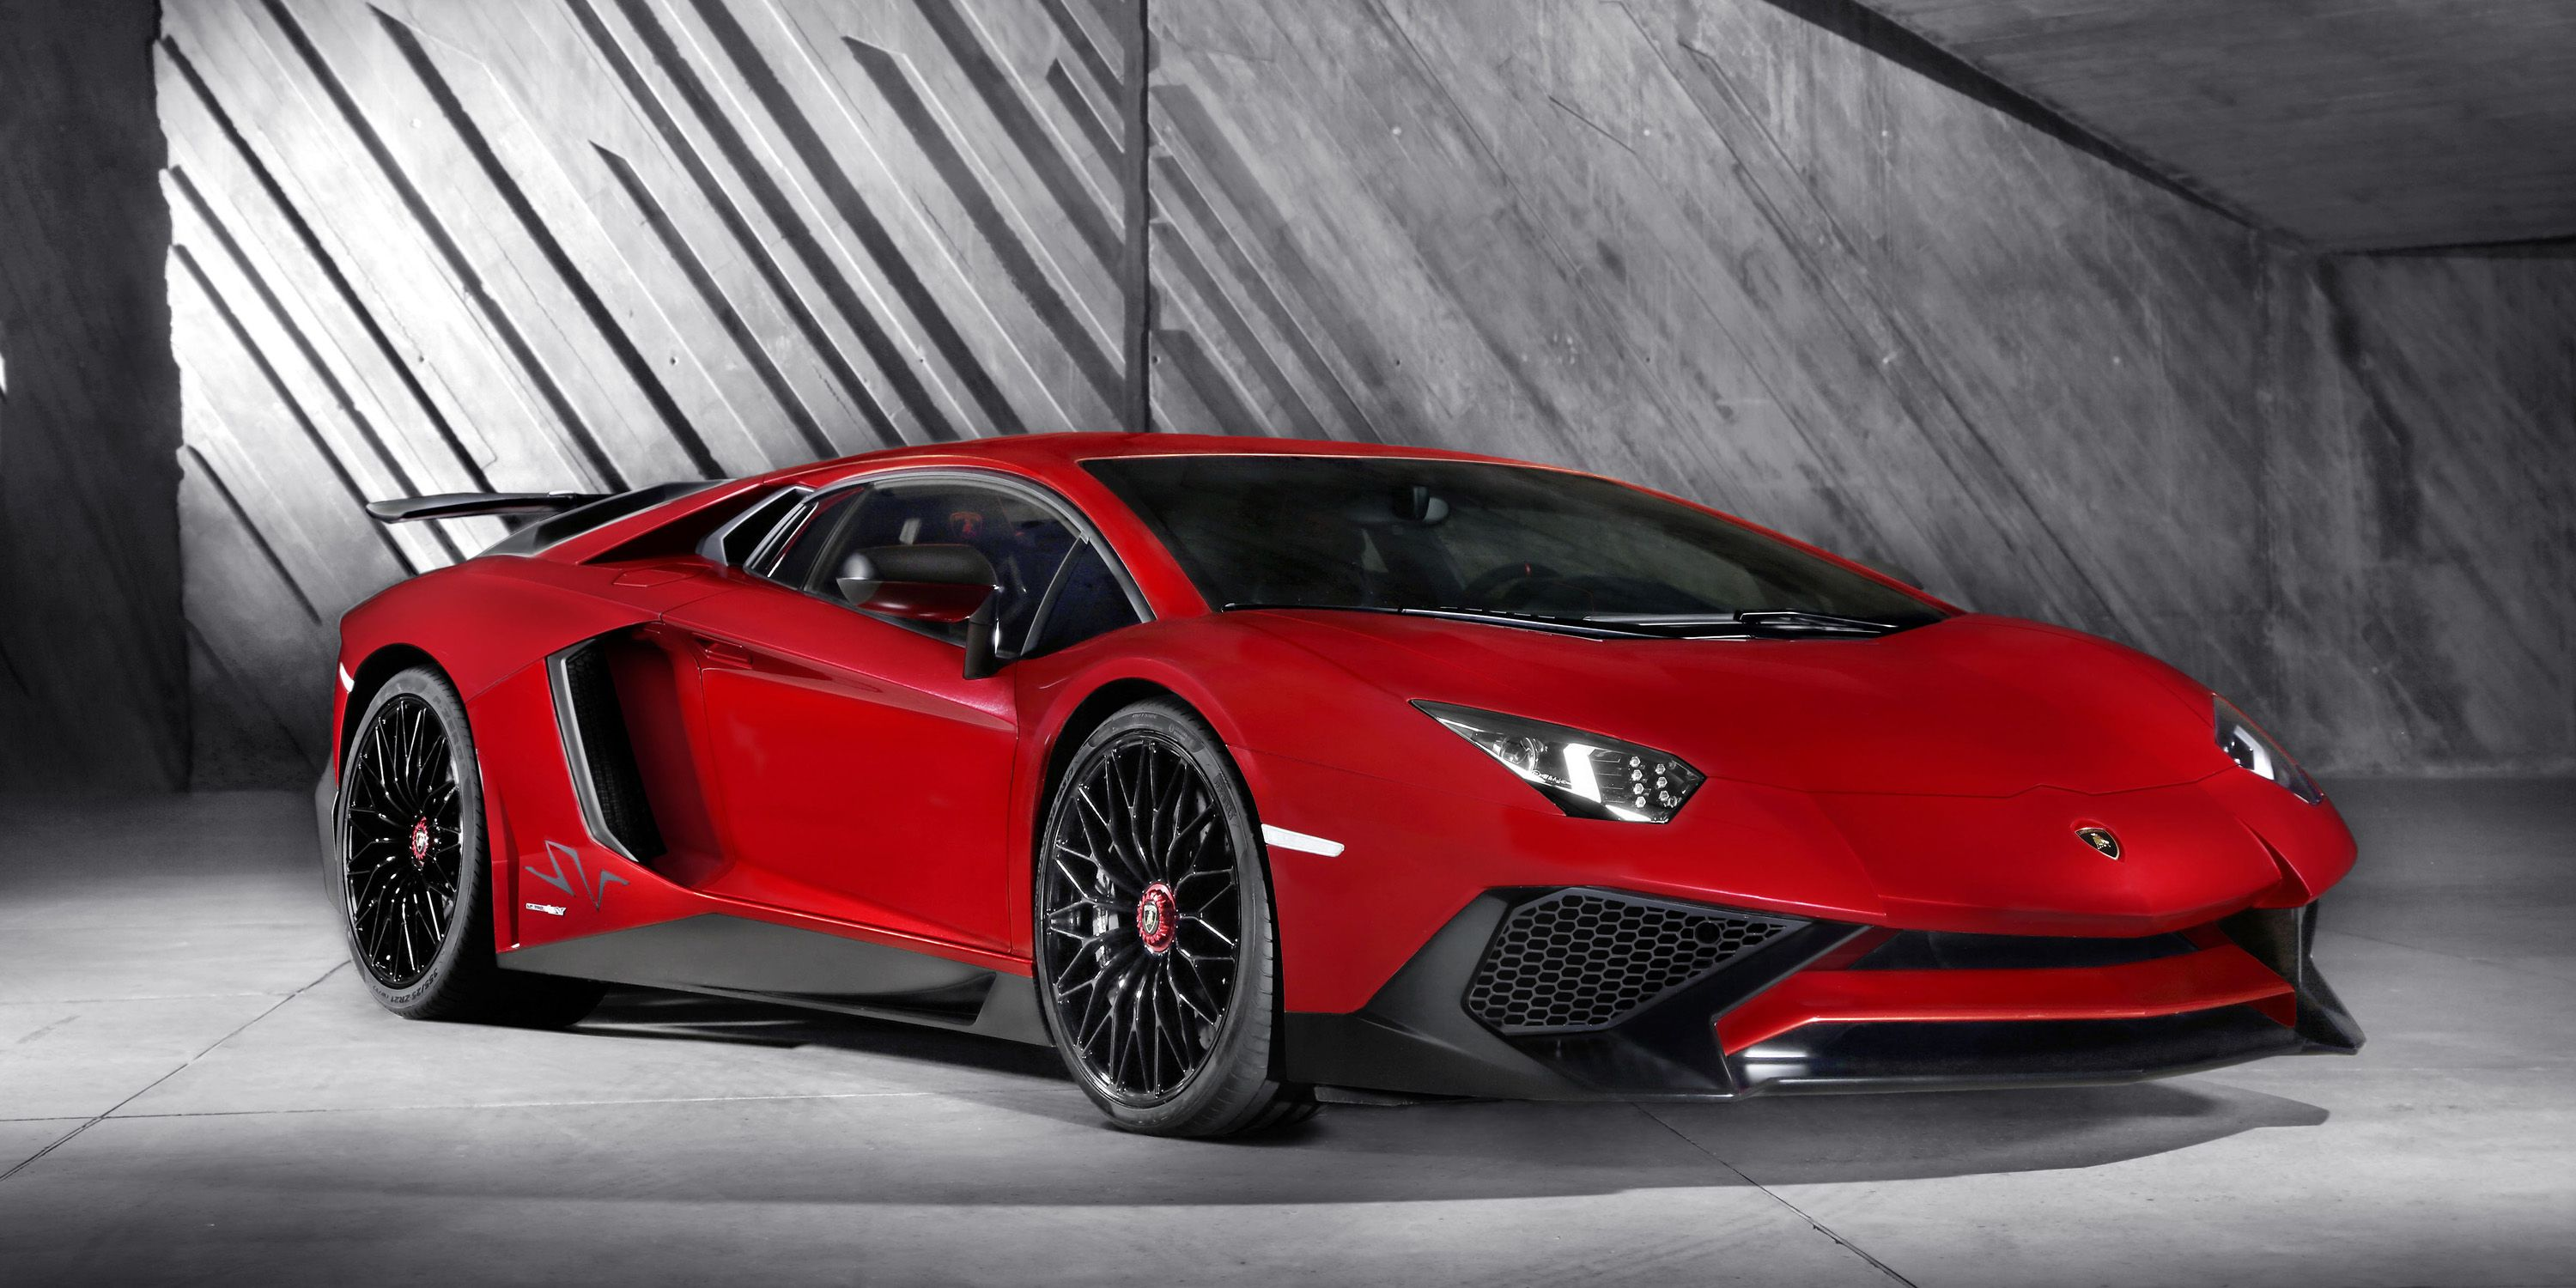 Fastest Lamborghini In The World >> Lamborghini Aventador Lp 750 4 Sv The Fastest Lambo Ever